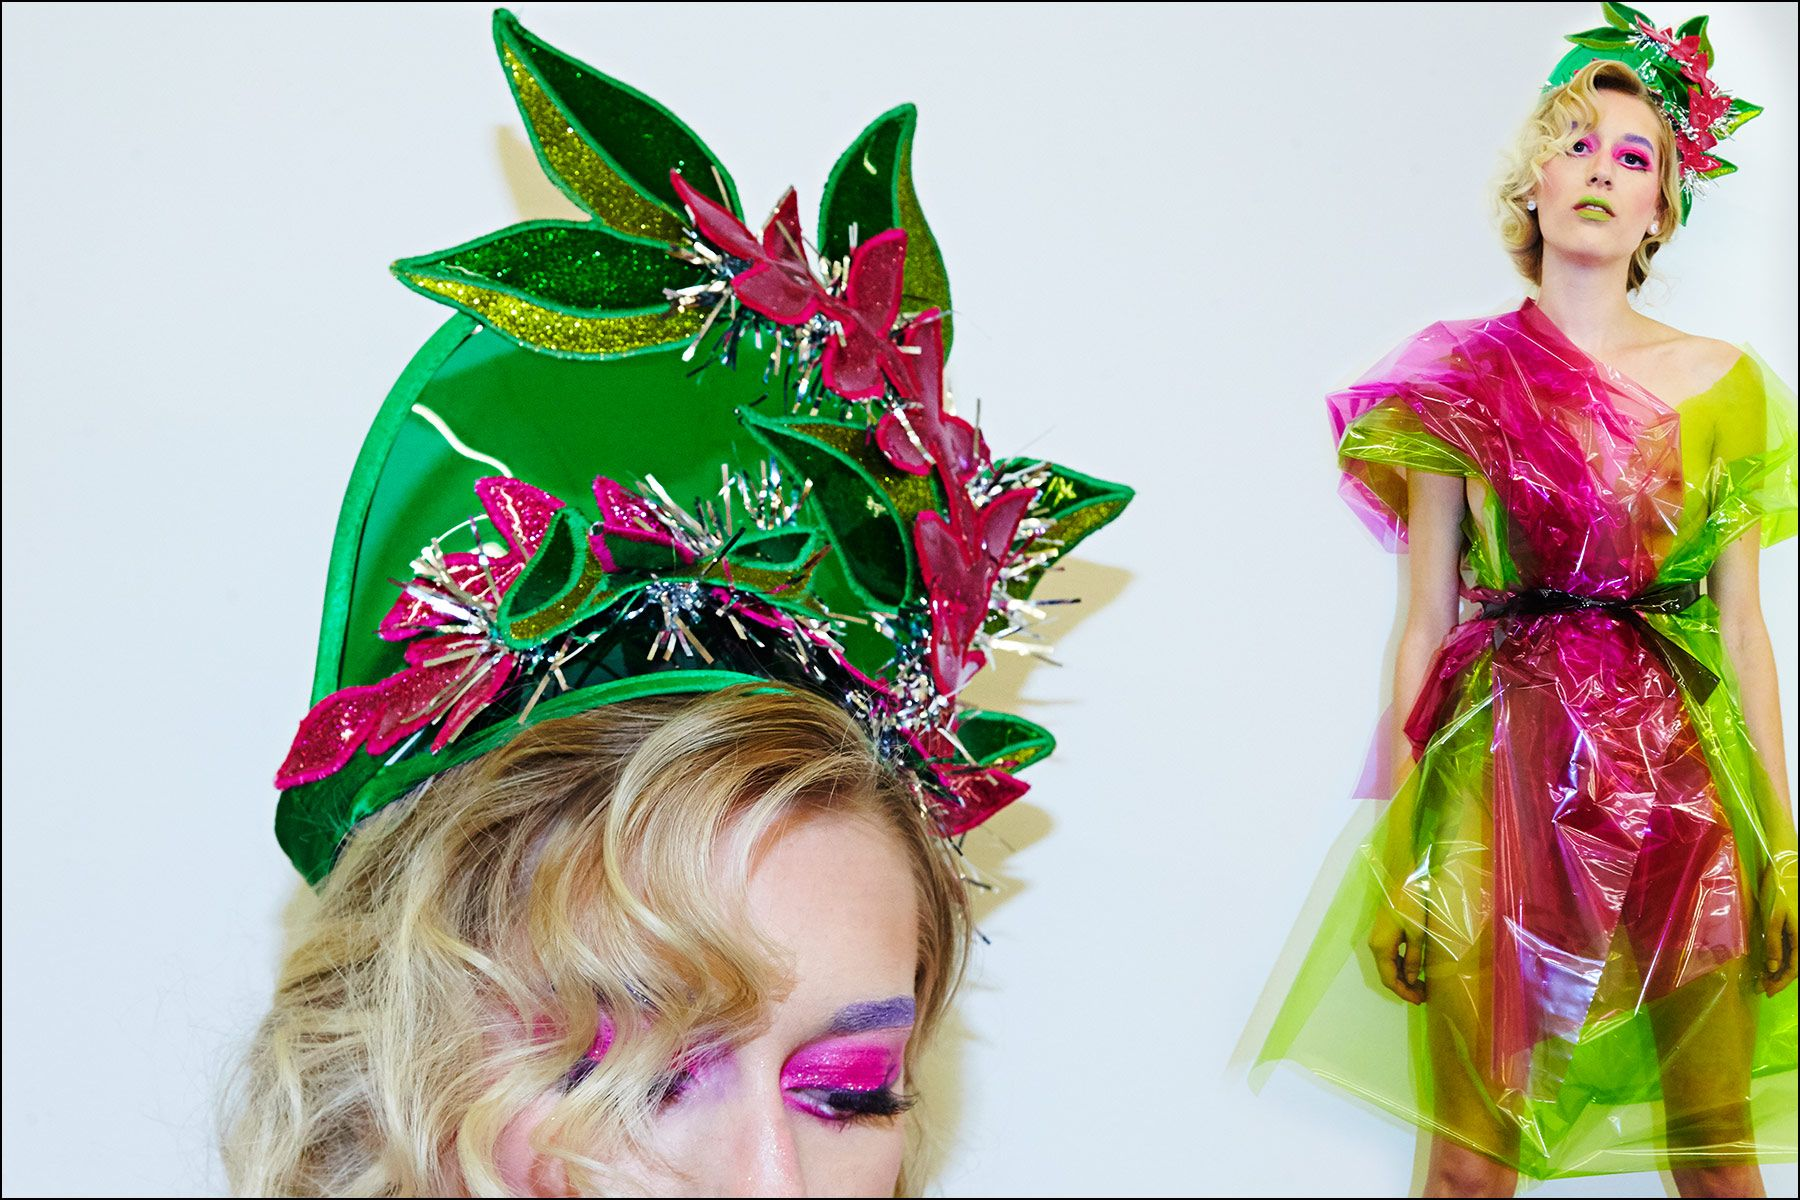 A festive visor designed by Stella Rose Saint Clair, for her hat line Stella. Photographed by Alexander Thompson for Ponyboy magazine NY.